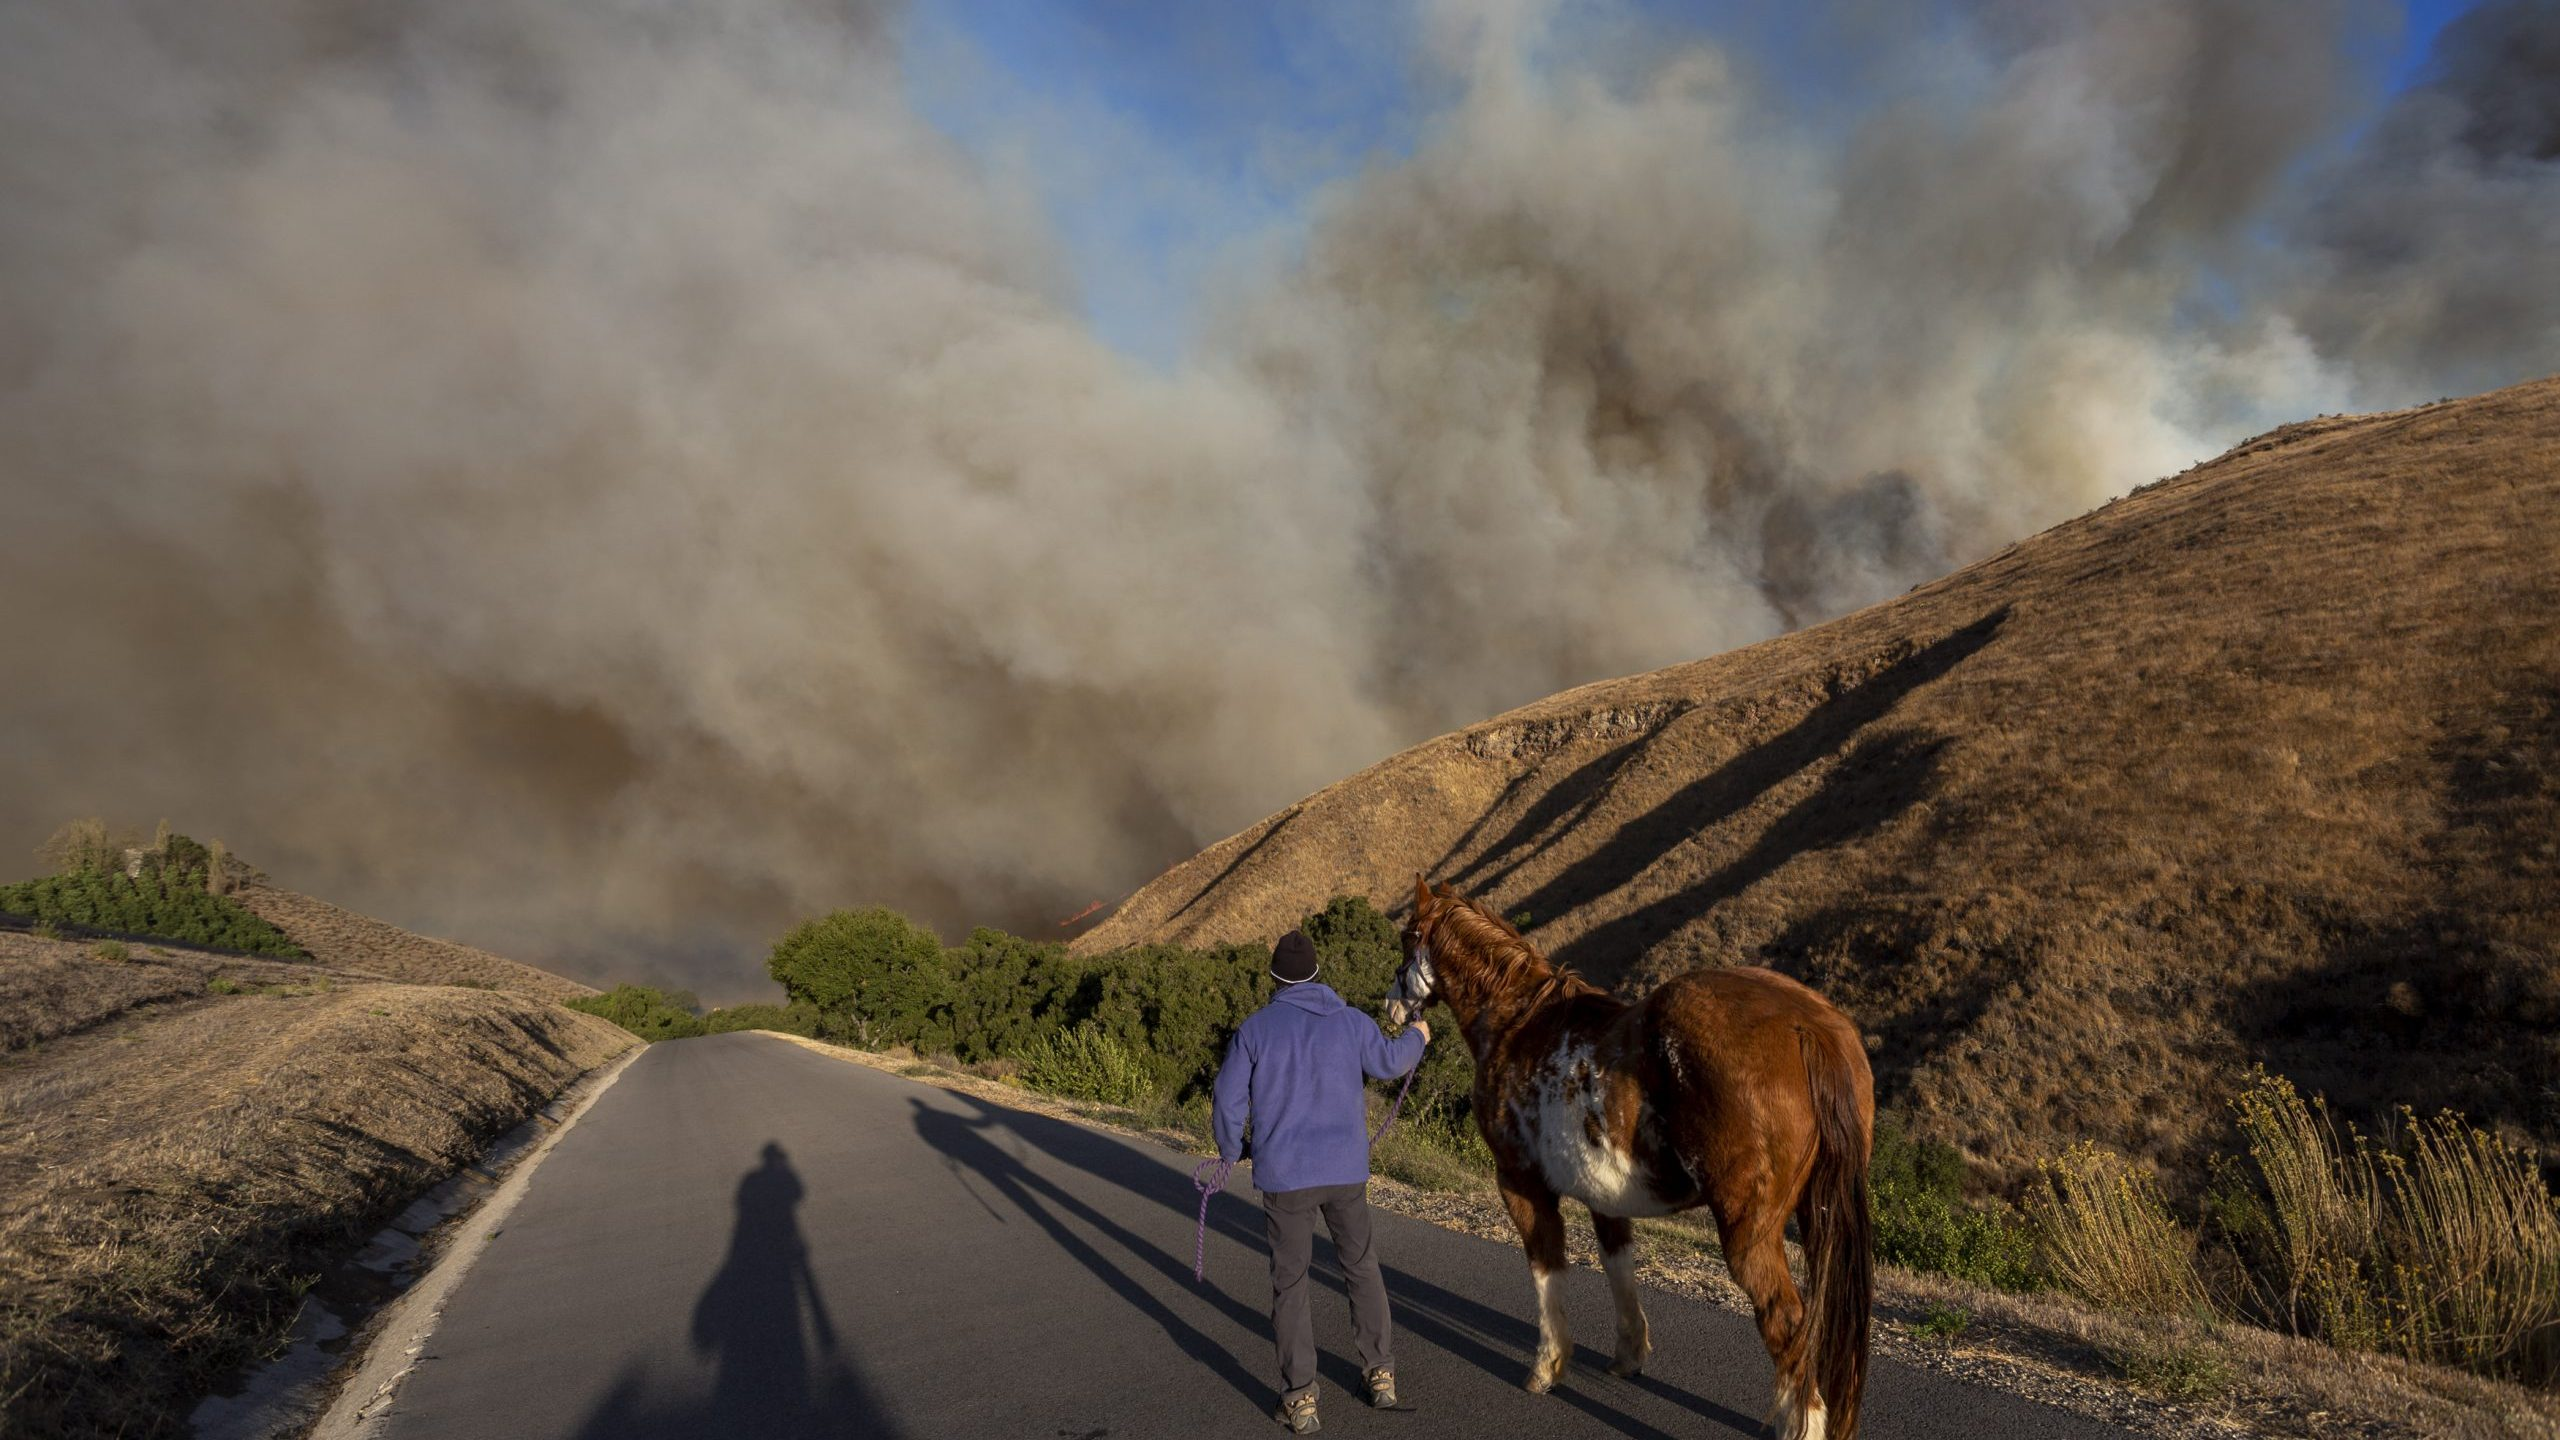 A man evacuates horses as the Easy Fire approaches on Oct. 30, 2019 near Simi Valley. (Credit: David McNew/Getty Images)